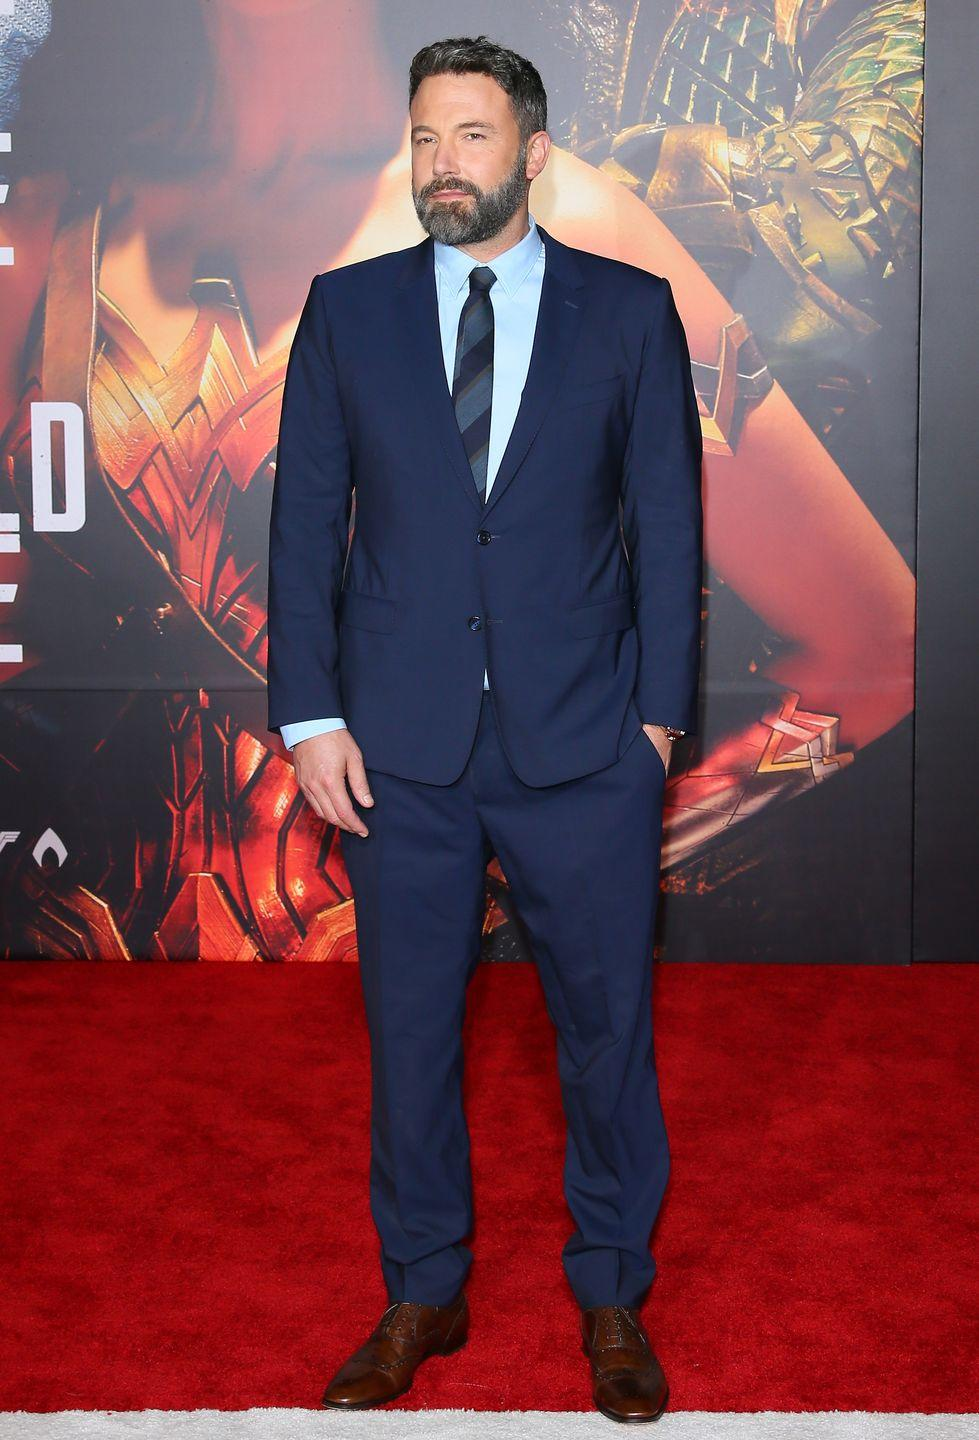 """<p>What hasn't his guy done? From winning Oscars for G<em>ood Will Hunting</em> and <em>Argo</em> to star turns in <em>Gone Girl </em>and<em> Batman v Superman: Dawn of Justice</em>, Affleck has had a stellar career. However, his personal life has taken a hit, as the father-of-three <a href=""""https://www.elle.com/culture/celebrities/a22830606/ben-affleck-jennifer-garners-divorce-settlement-is-reportedly-complete/"""" rel=""""nofollow noopener"""" target=""""_blank"""" data-ylk=""""slk:separated"""" class=""""link rapid-noclick-resp"""">separated</a> from wife Jennifer Garner in 2015 and recently <a href=""""https://www.cosmopolitan.com/entertainment/a22807915/ben-affleck-enters-rehab-intervention-jennifer-garner/"""" rel=""""nofollow noopener"""" target=""""_blank"""" data-ylk=""""slk:re-entered rehab"""" class=""""link rapid-noclick-resp"""">re-entered rehab</a>.</p>"""